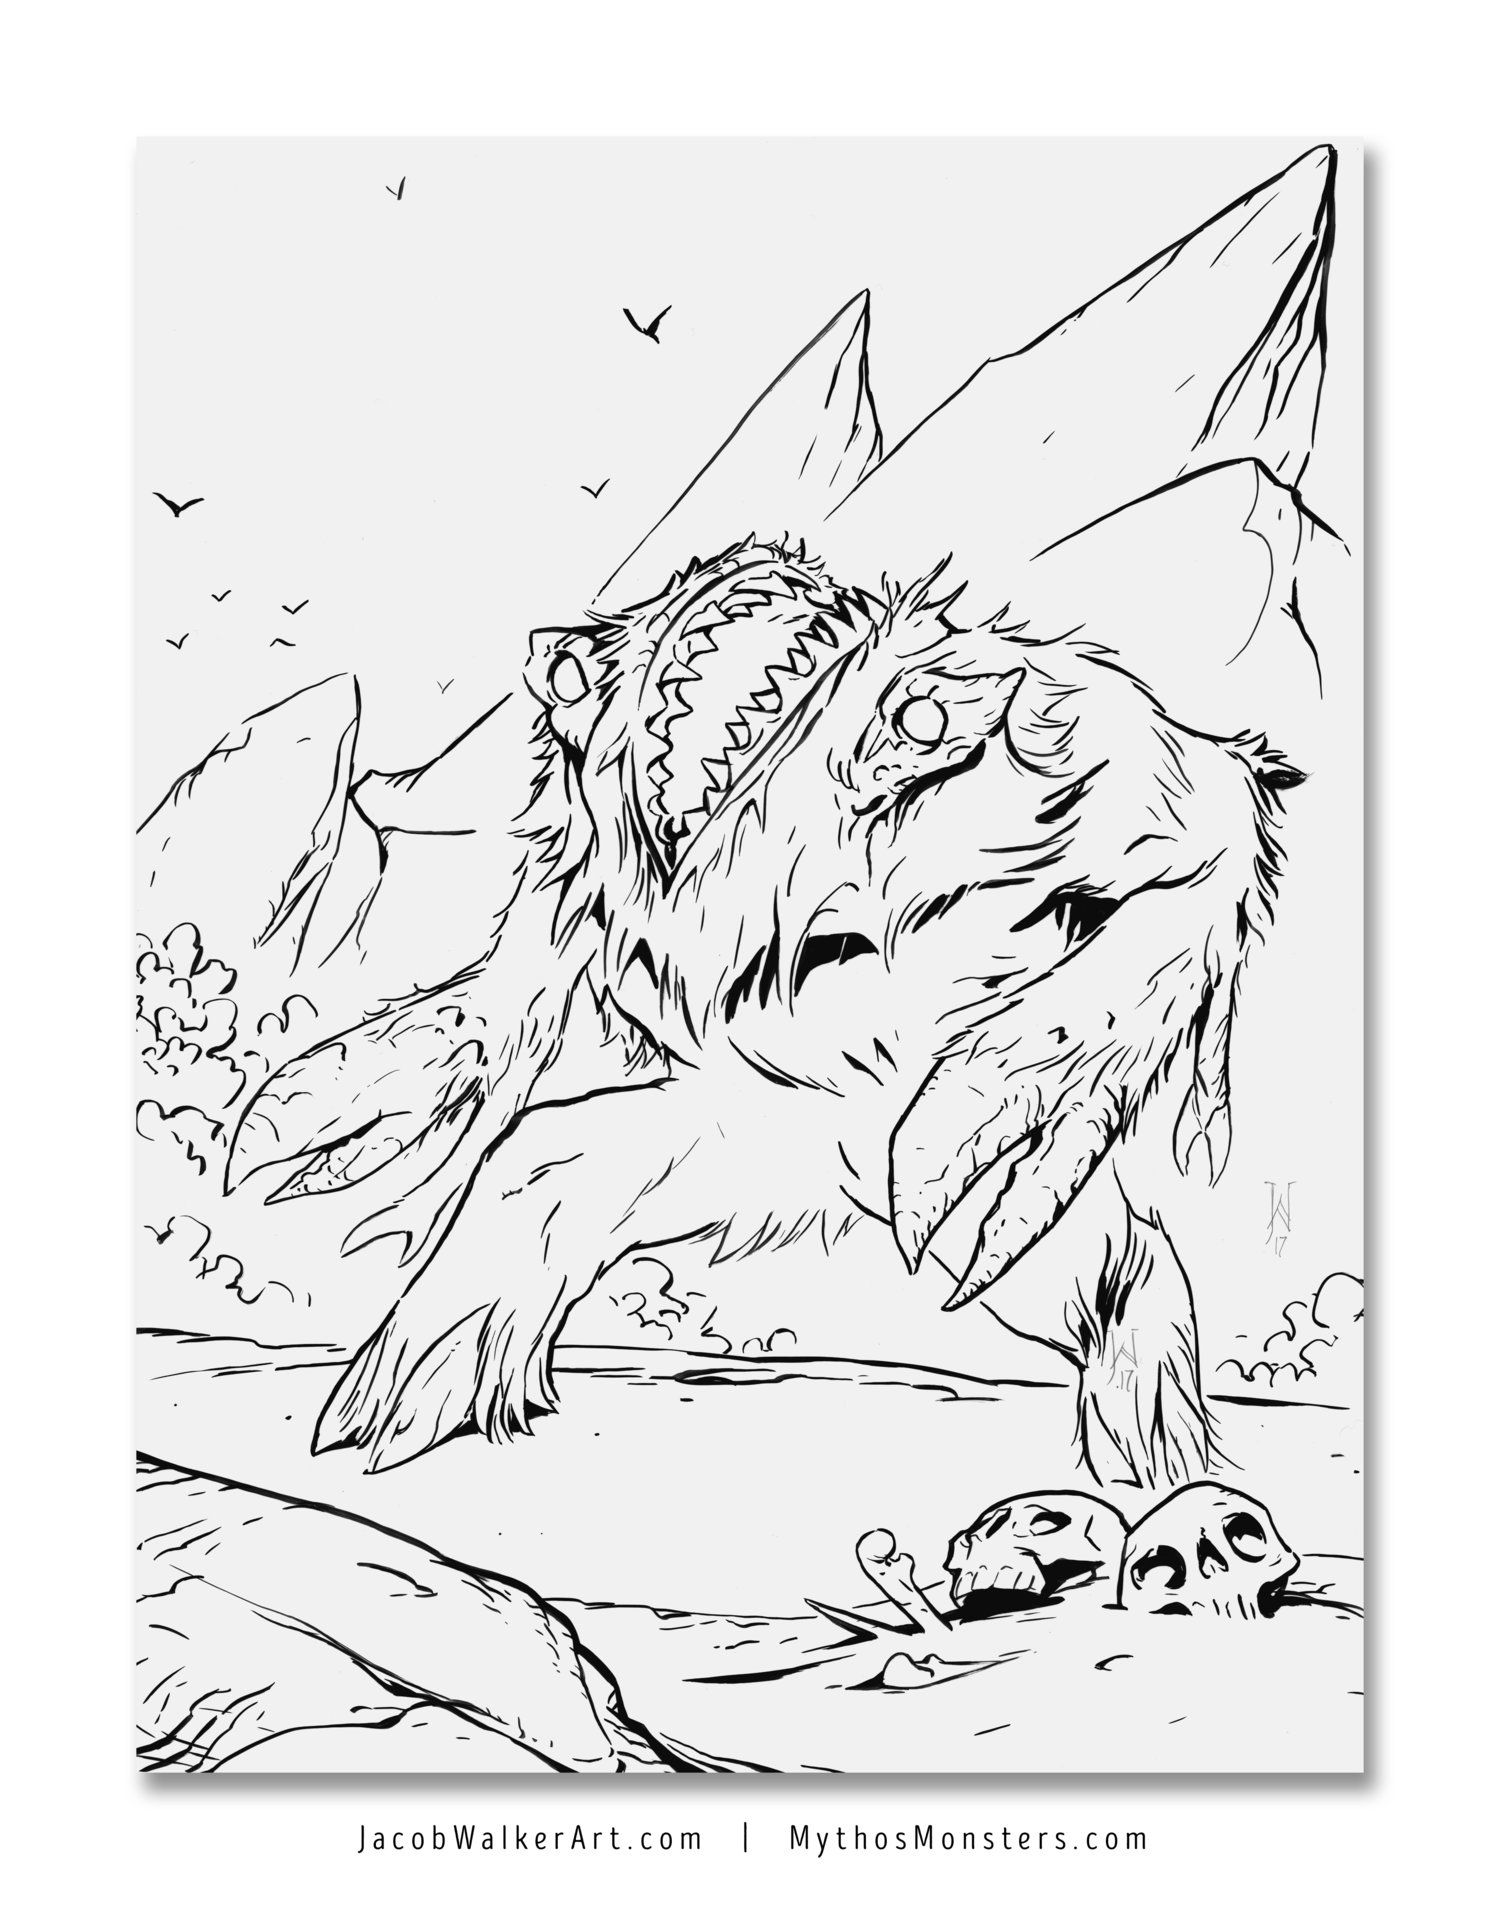 Creature Blog Mythos Monsters Hpl S Gug Coloring Page For Monsters Of Literature Coloring Book Lovecraft Cthulhu Monster Coloring Books